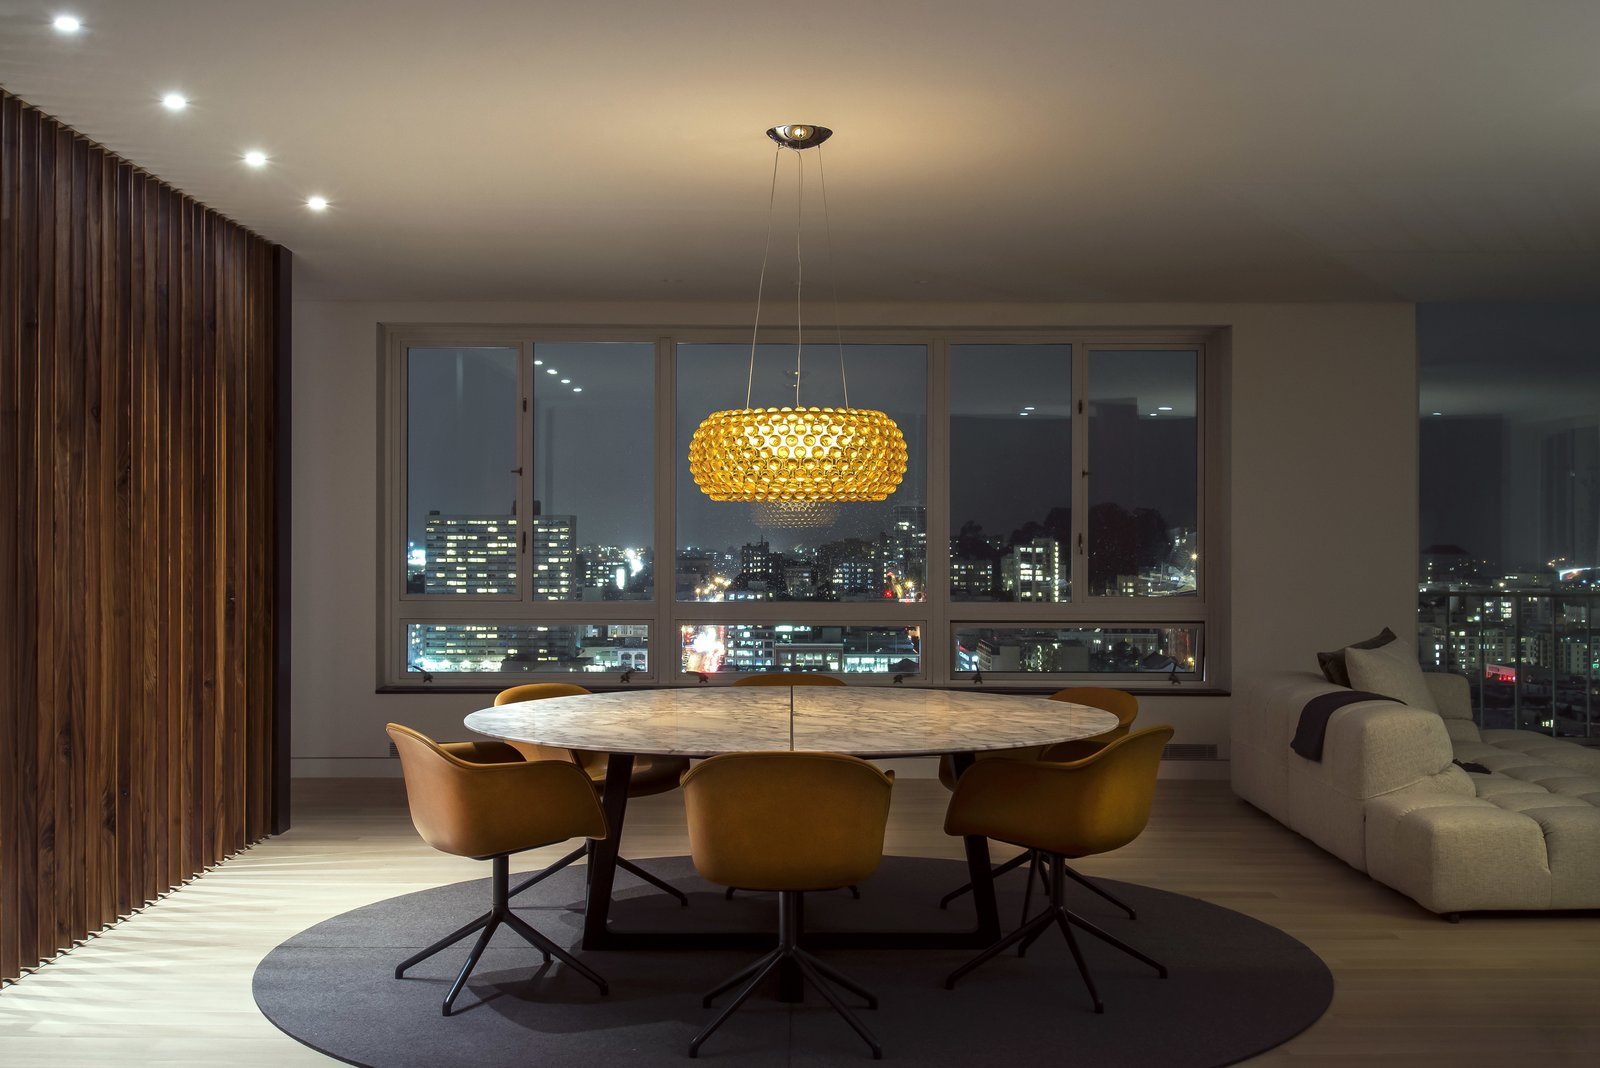 Dining Room - Night City View  Nob Hill Residence by Imbue Design